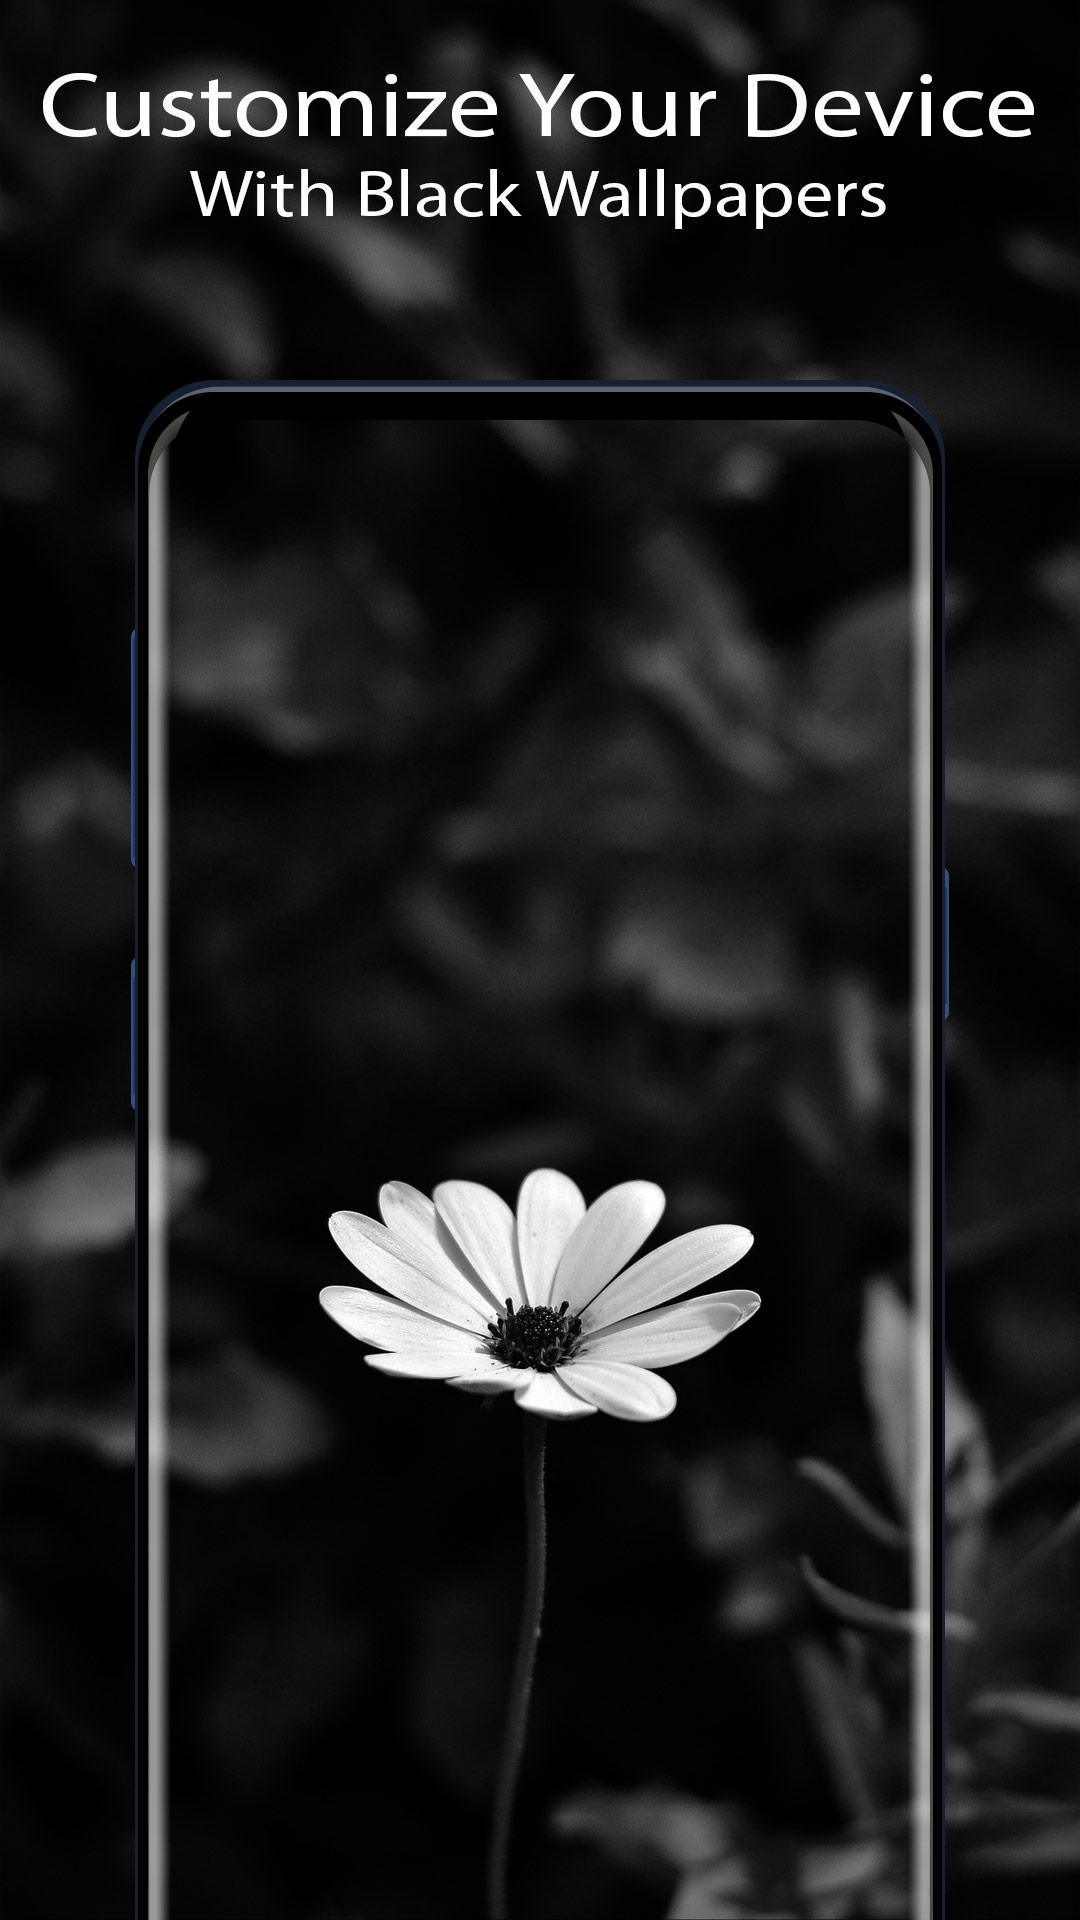 Black Wallpapers Full Hd Dark Amoled Backgrounds For Android